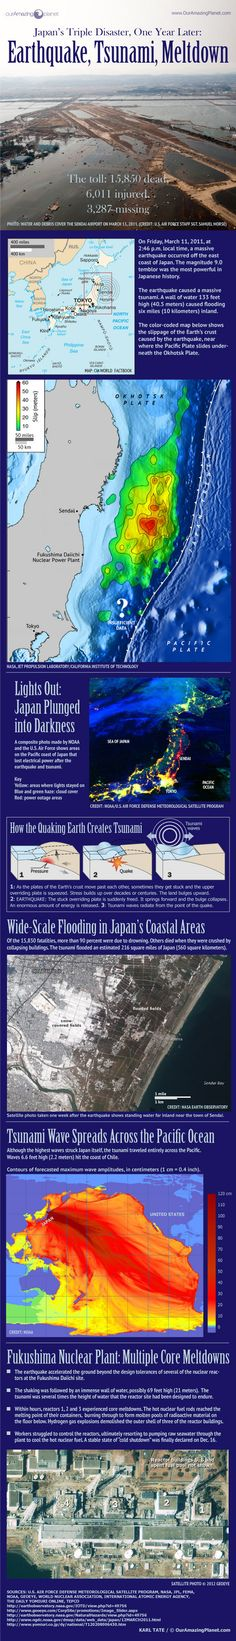 One Year Later: How the Earthquake & Tsunami Devastated Japan (Infographic)